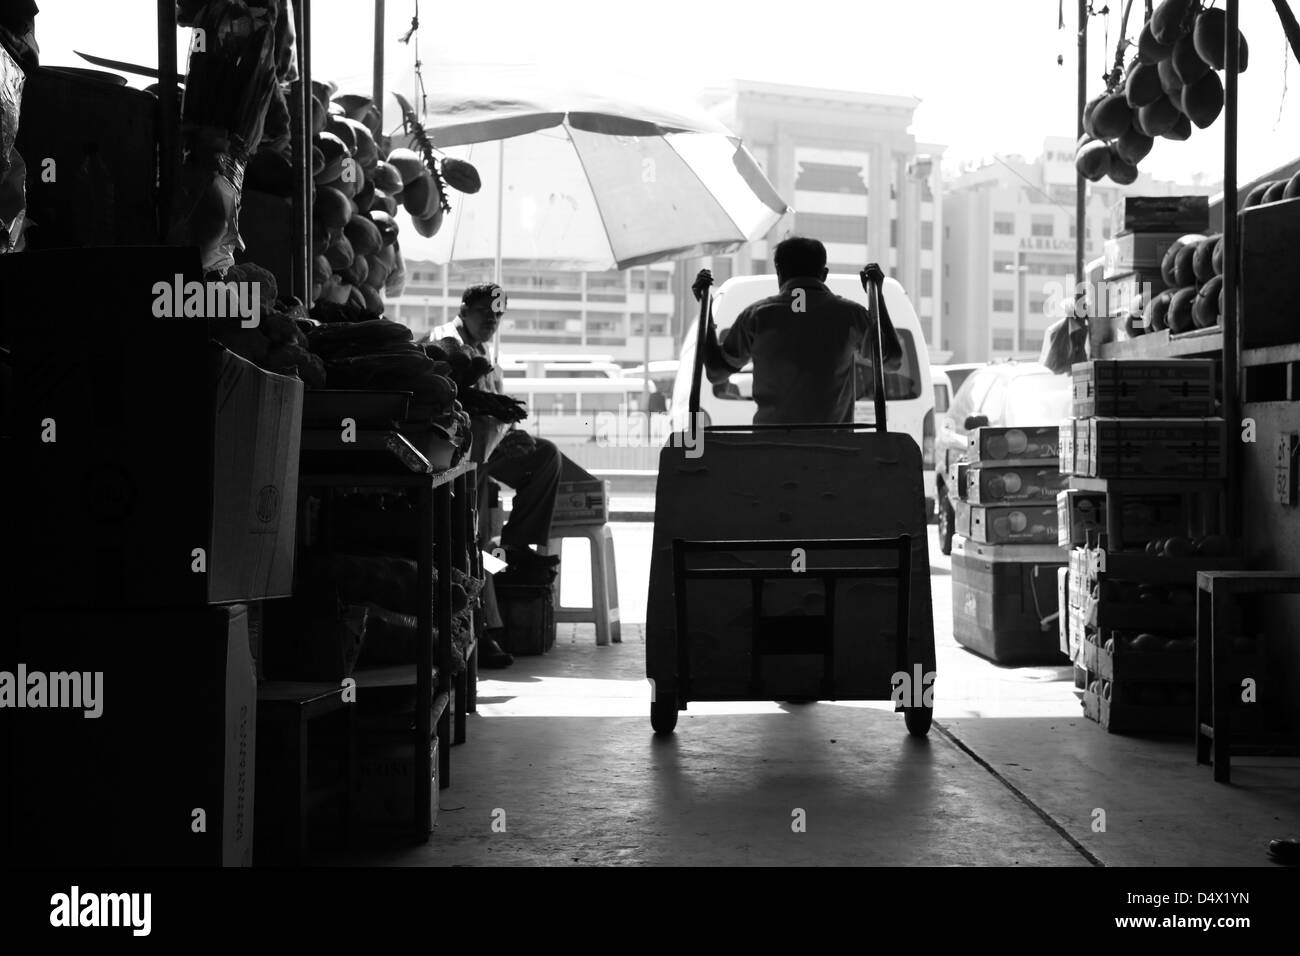 Silhouette of man pulling cart at market in Dubai, United Arab Emirates - Stock Image